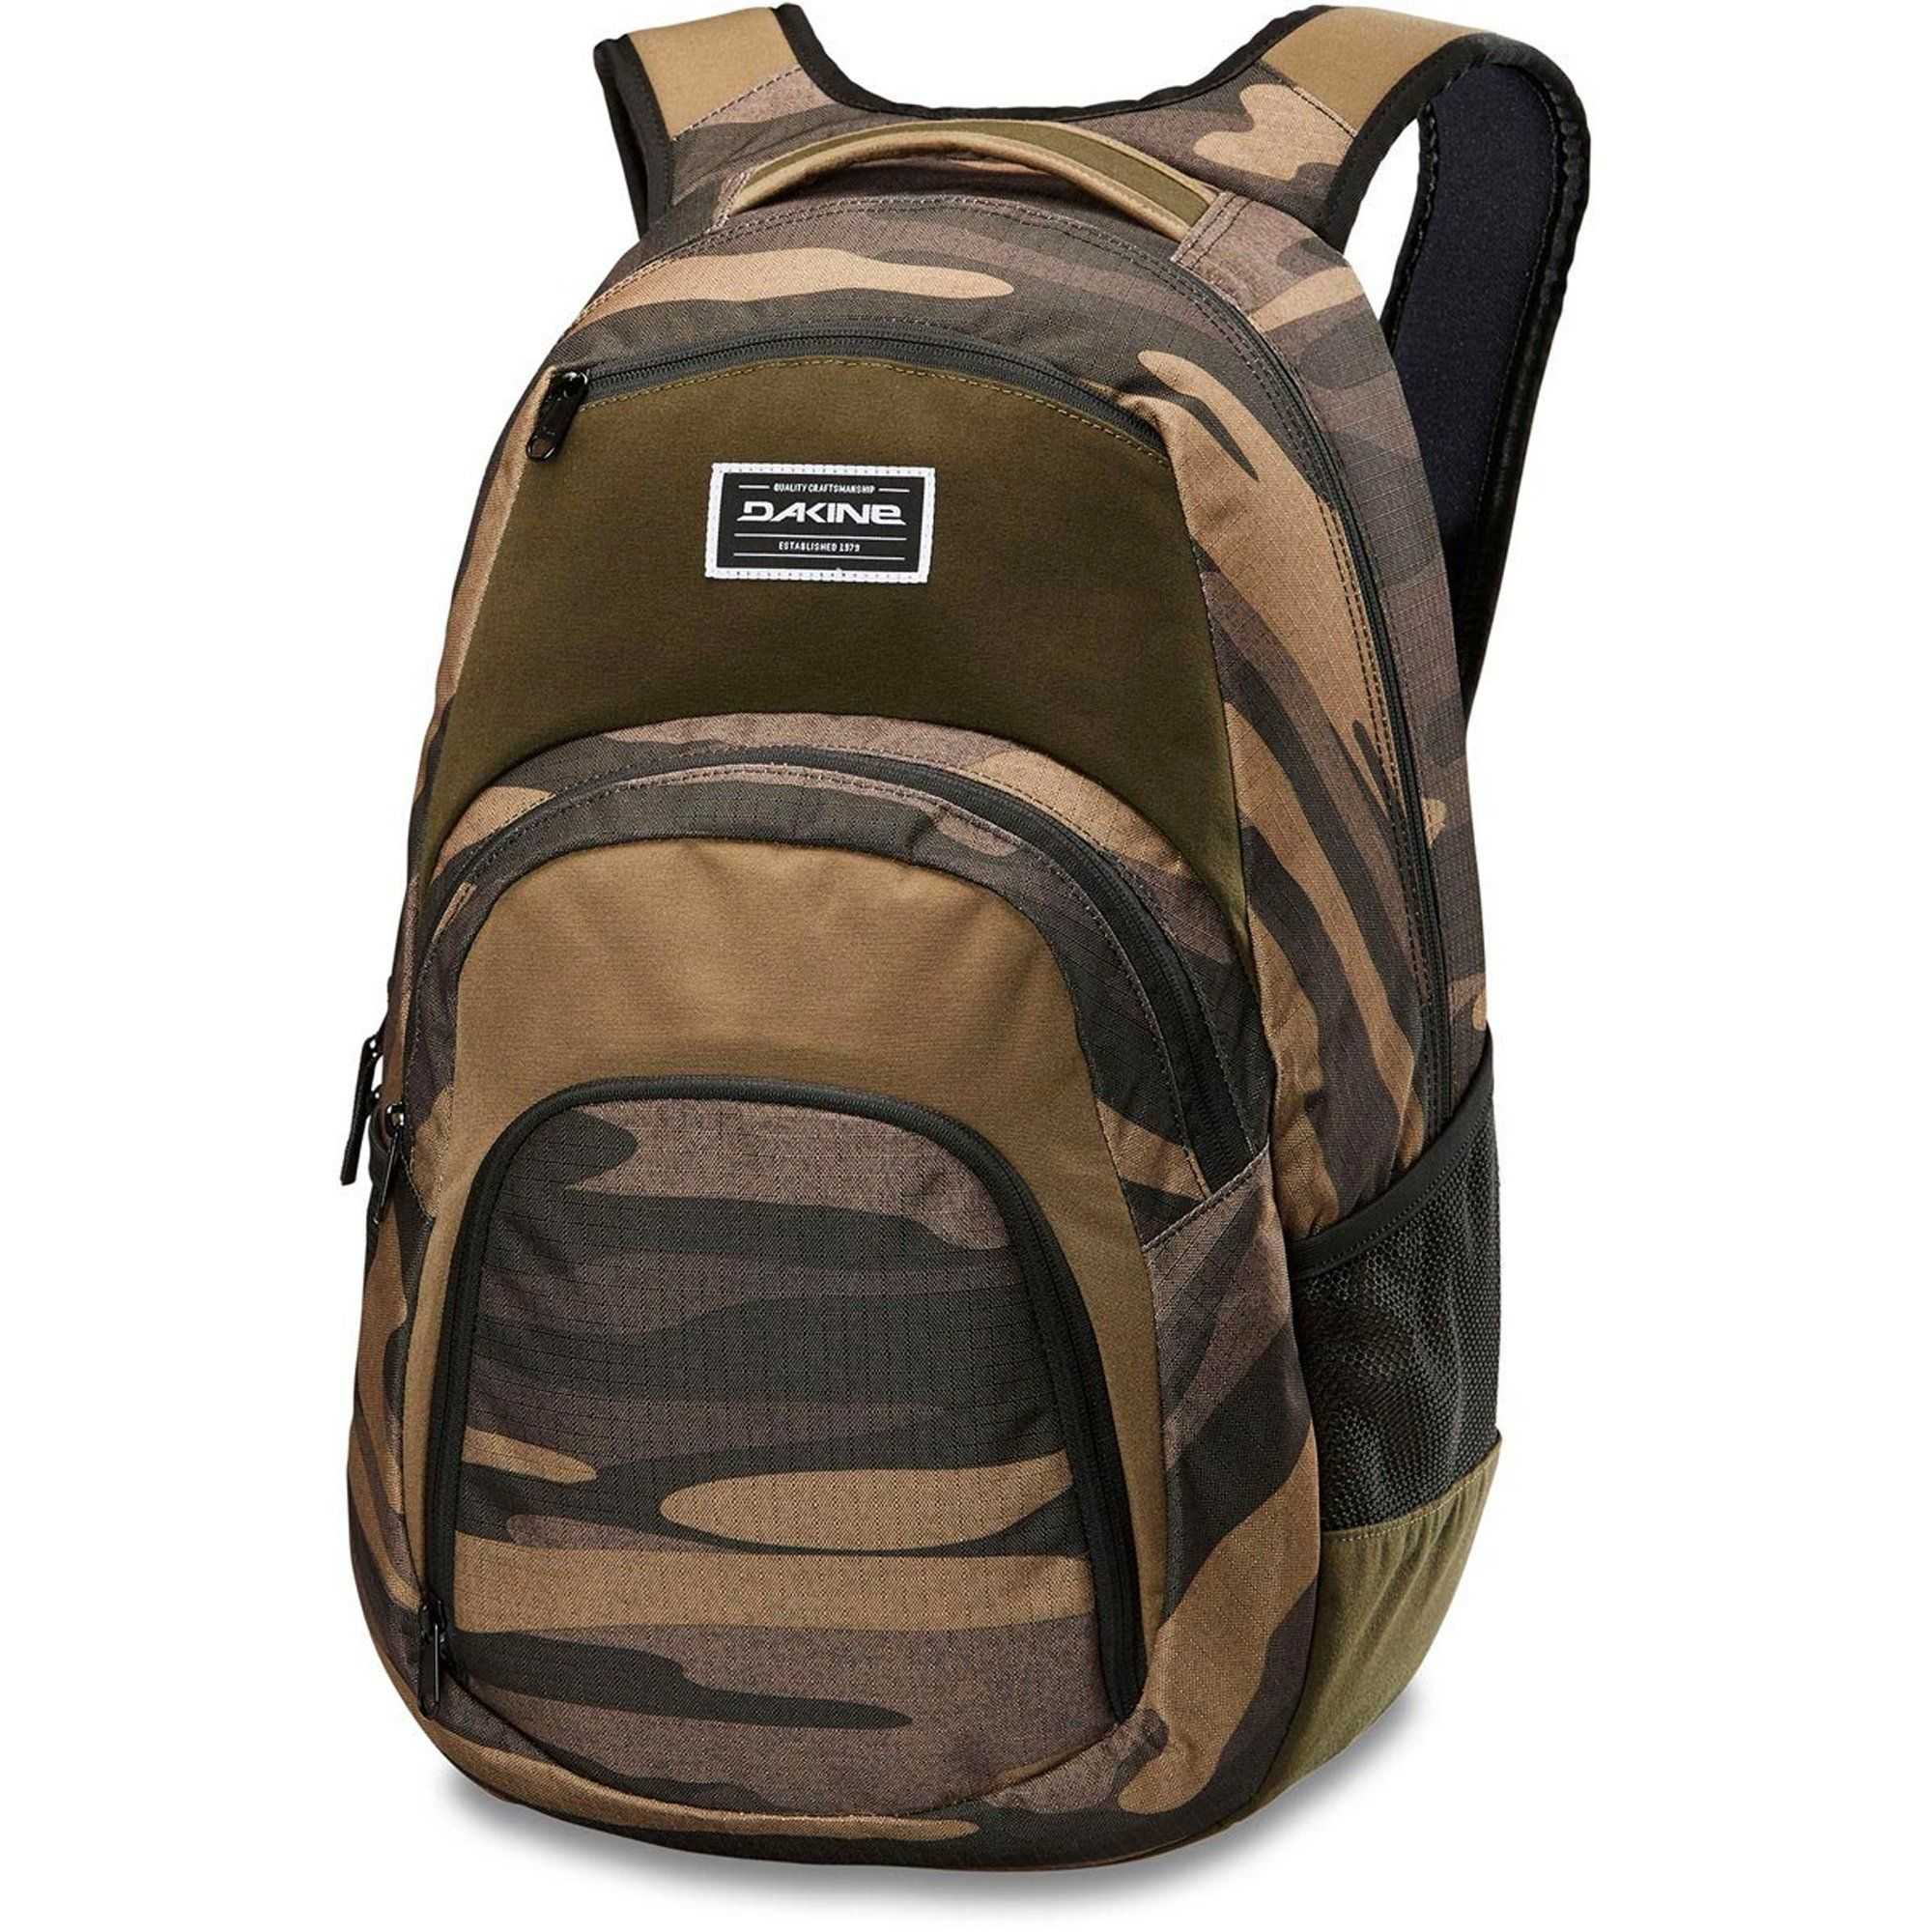 Dakine Campus 33L Backpack   Products in 2018   Pinterest ... f1c8d1e46c